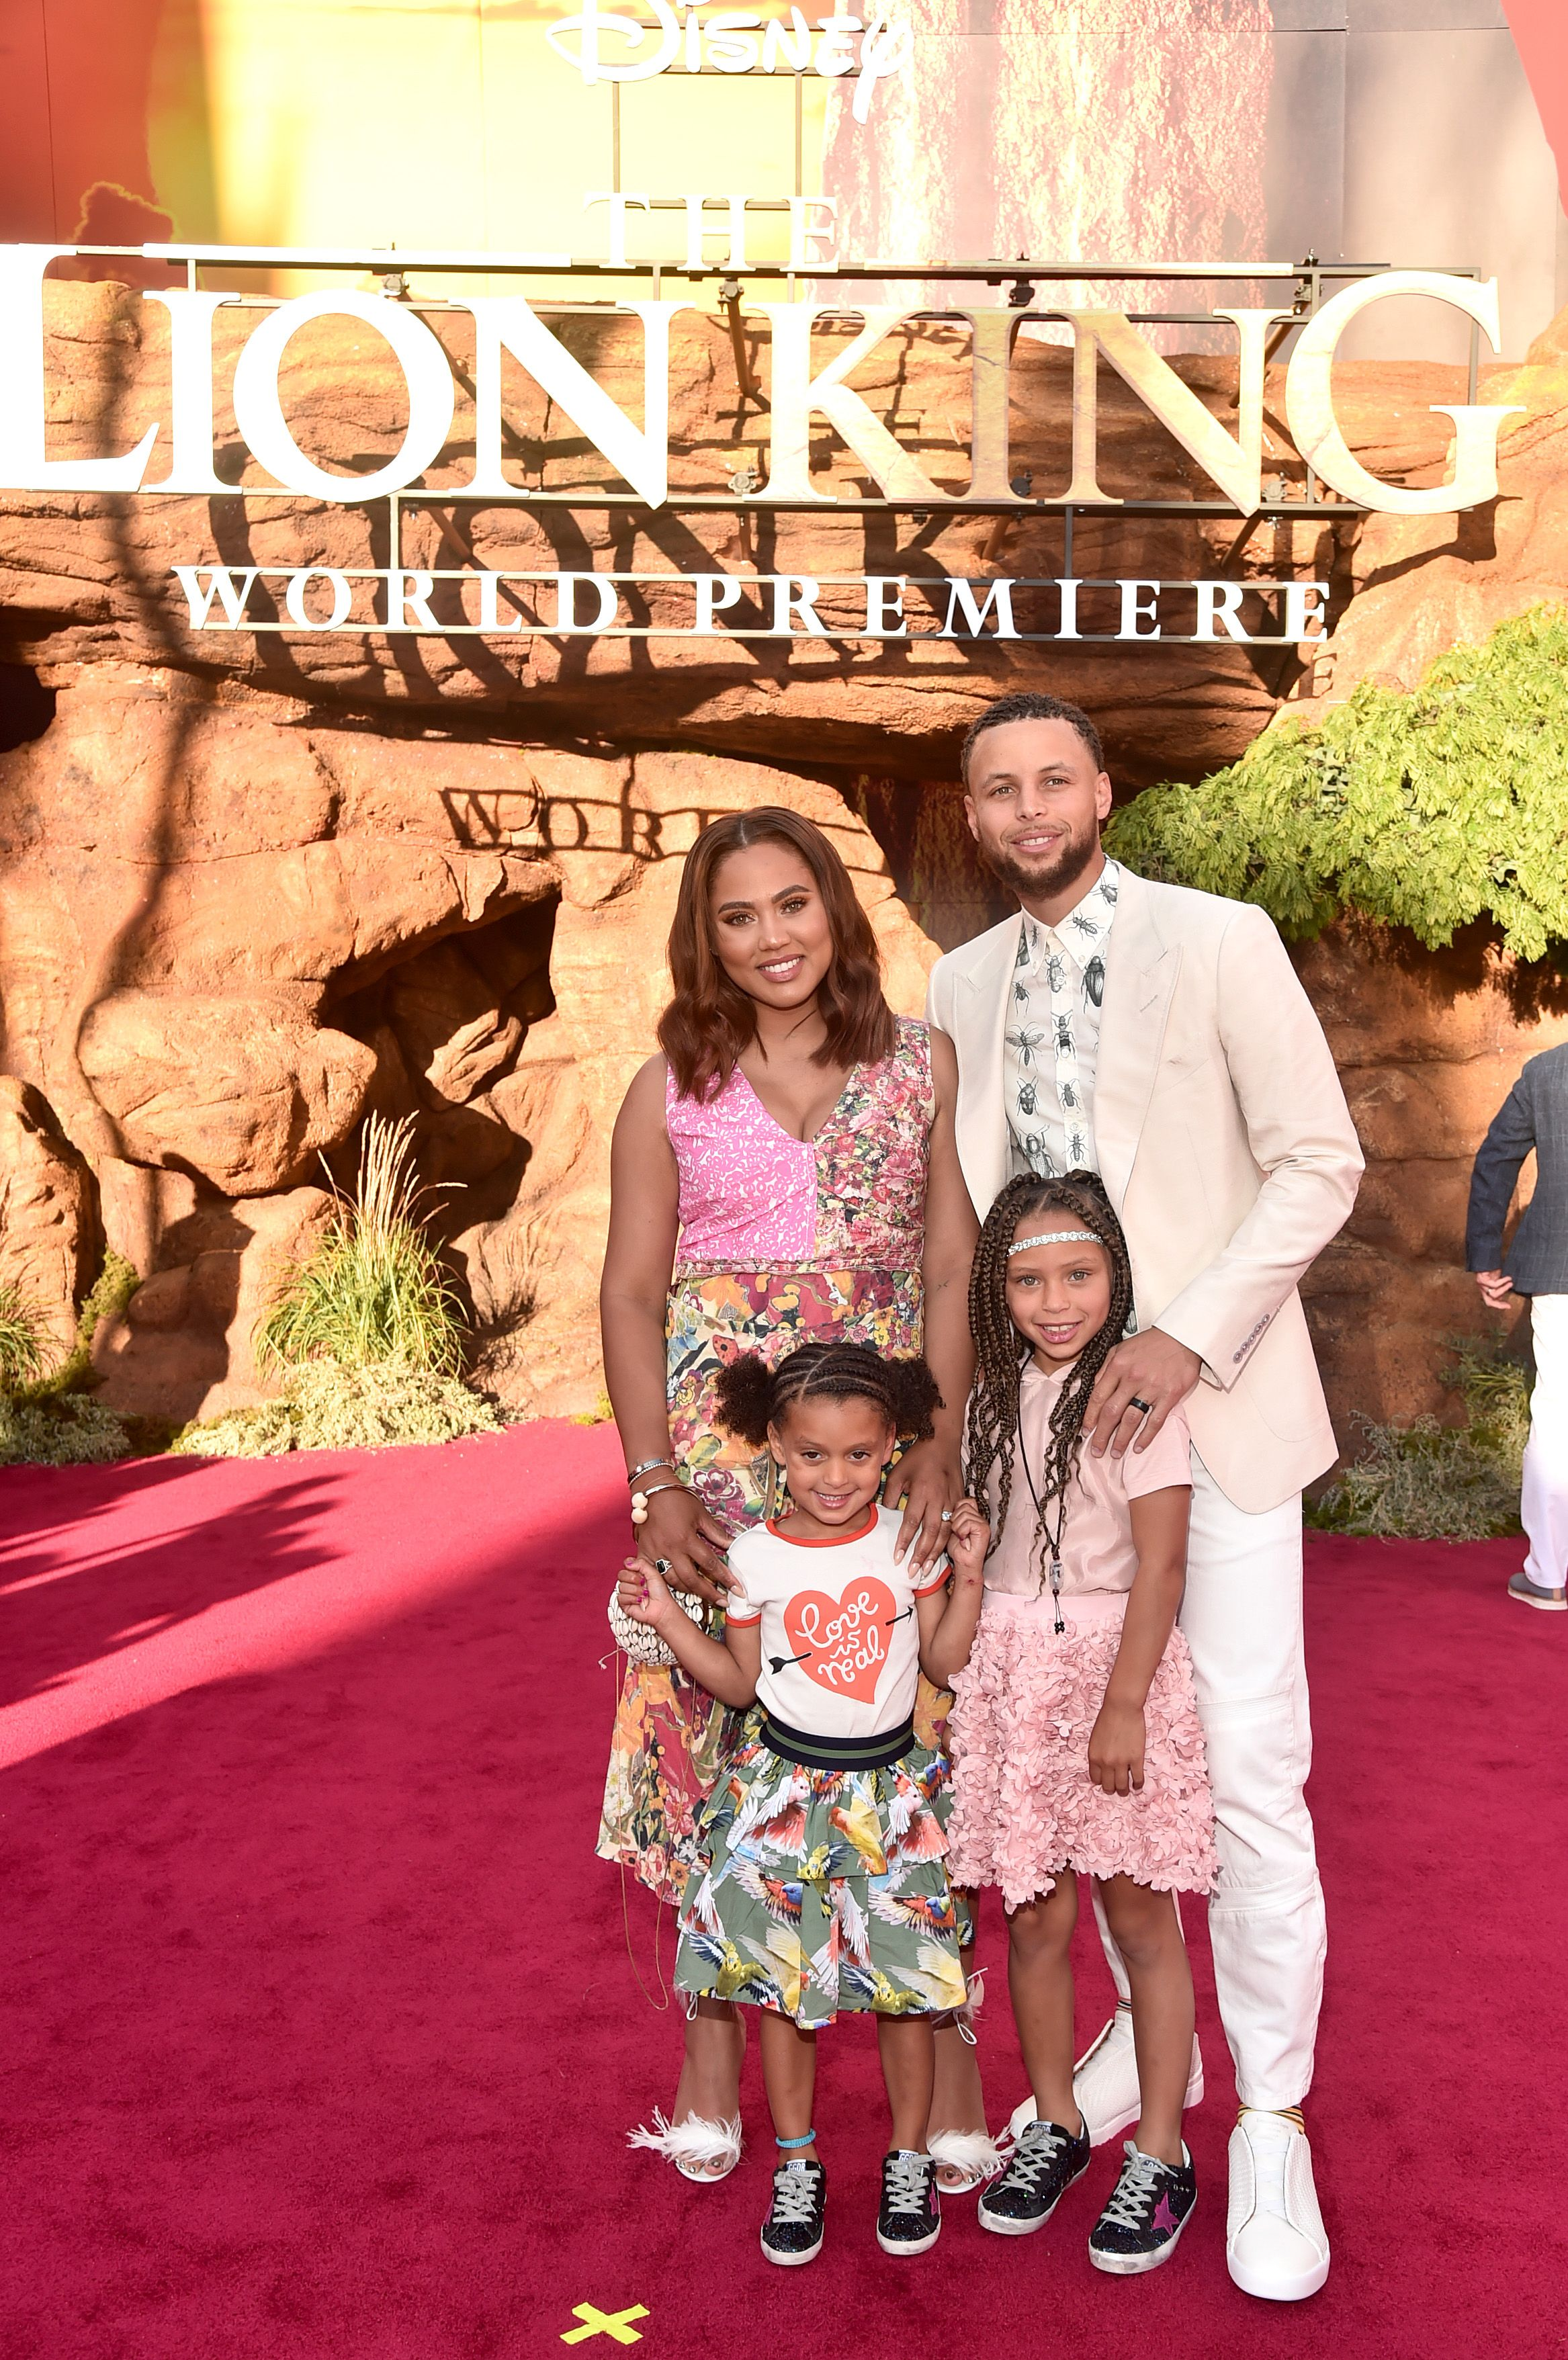 """Ryan Curry, Ayesha Curry, Riley Curry, and Stephen Curry attend the world premiere of Disney's """"The Lion King"""" in July 2019 